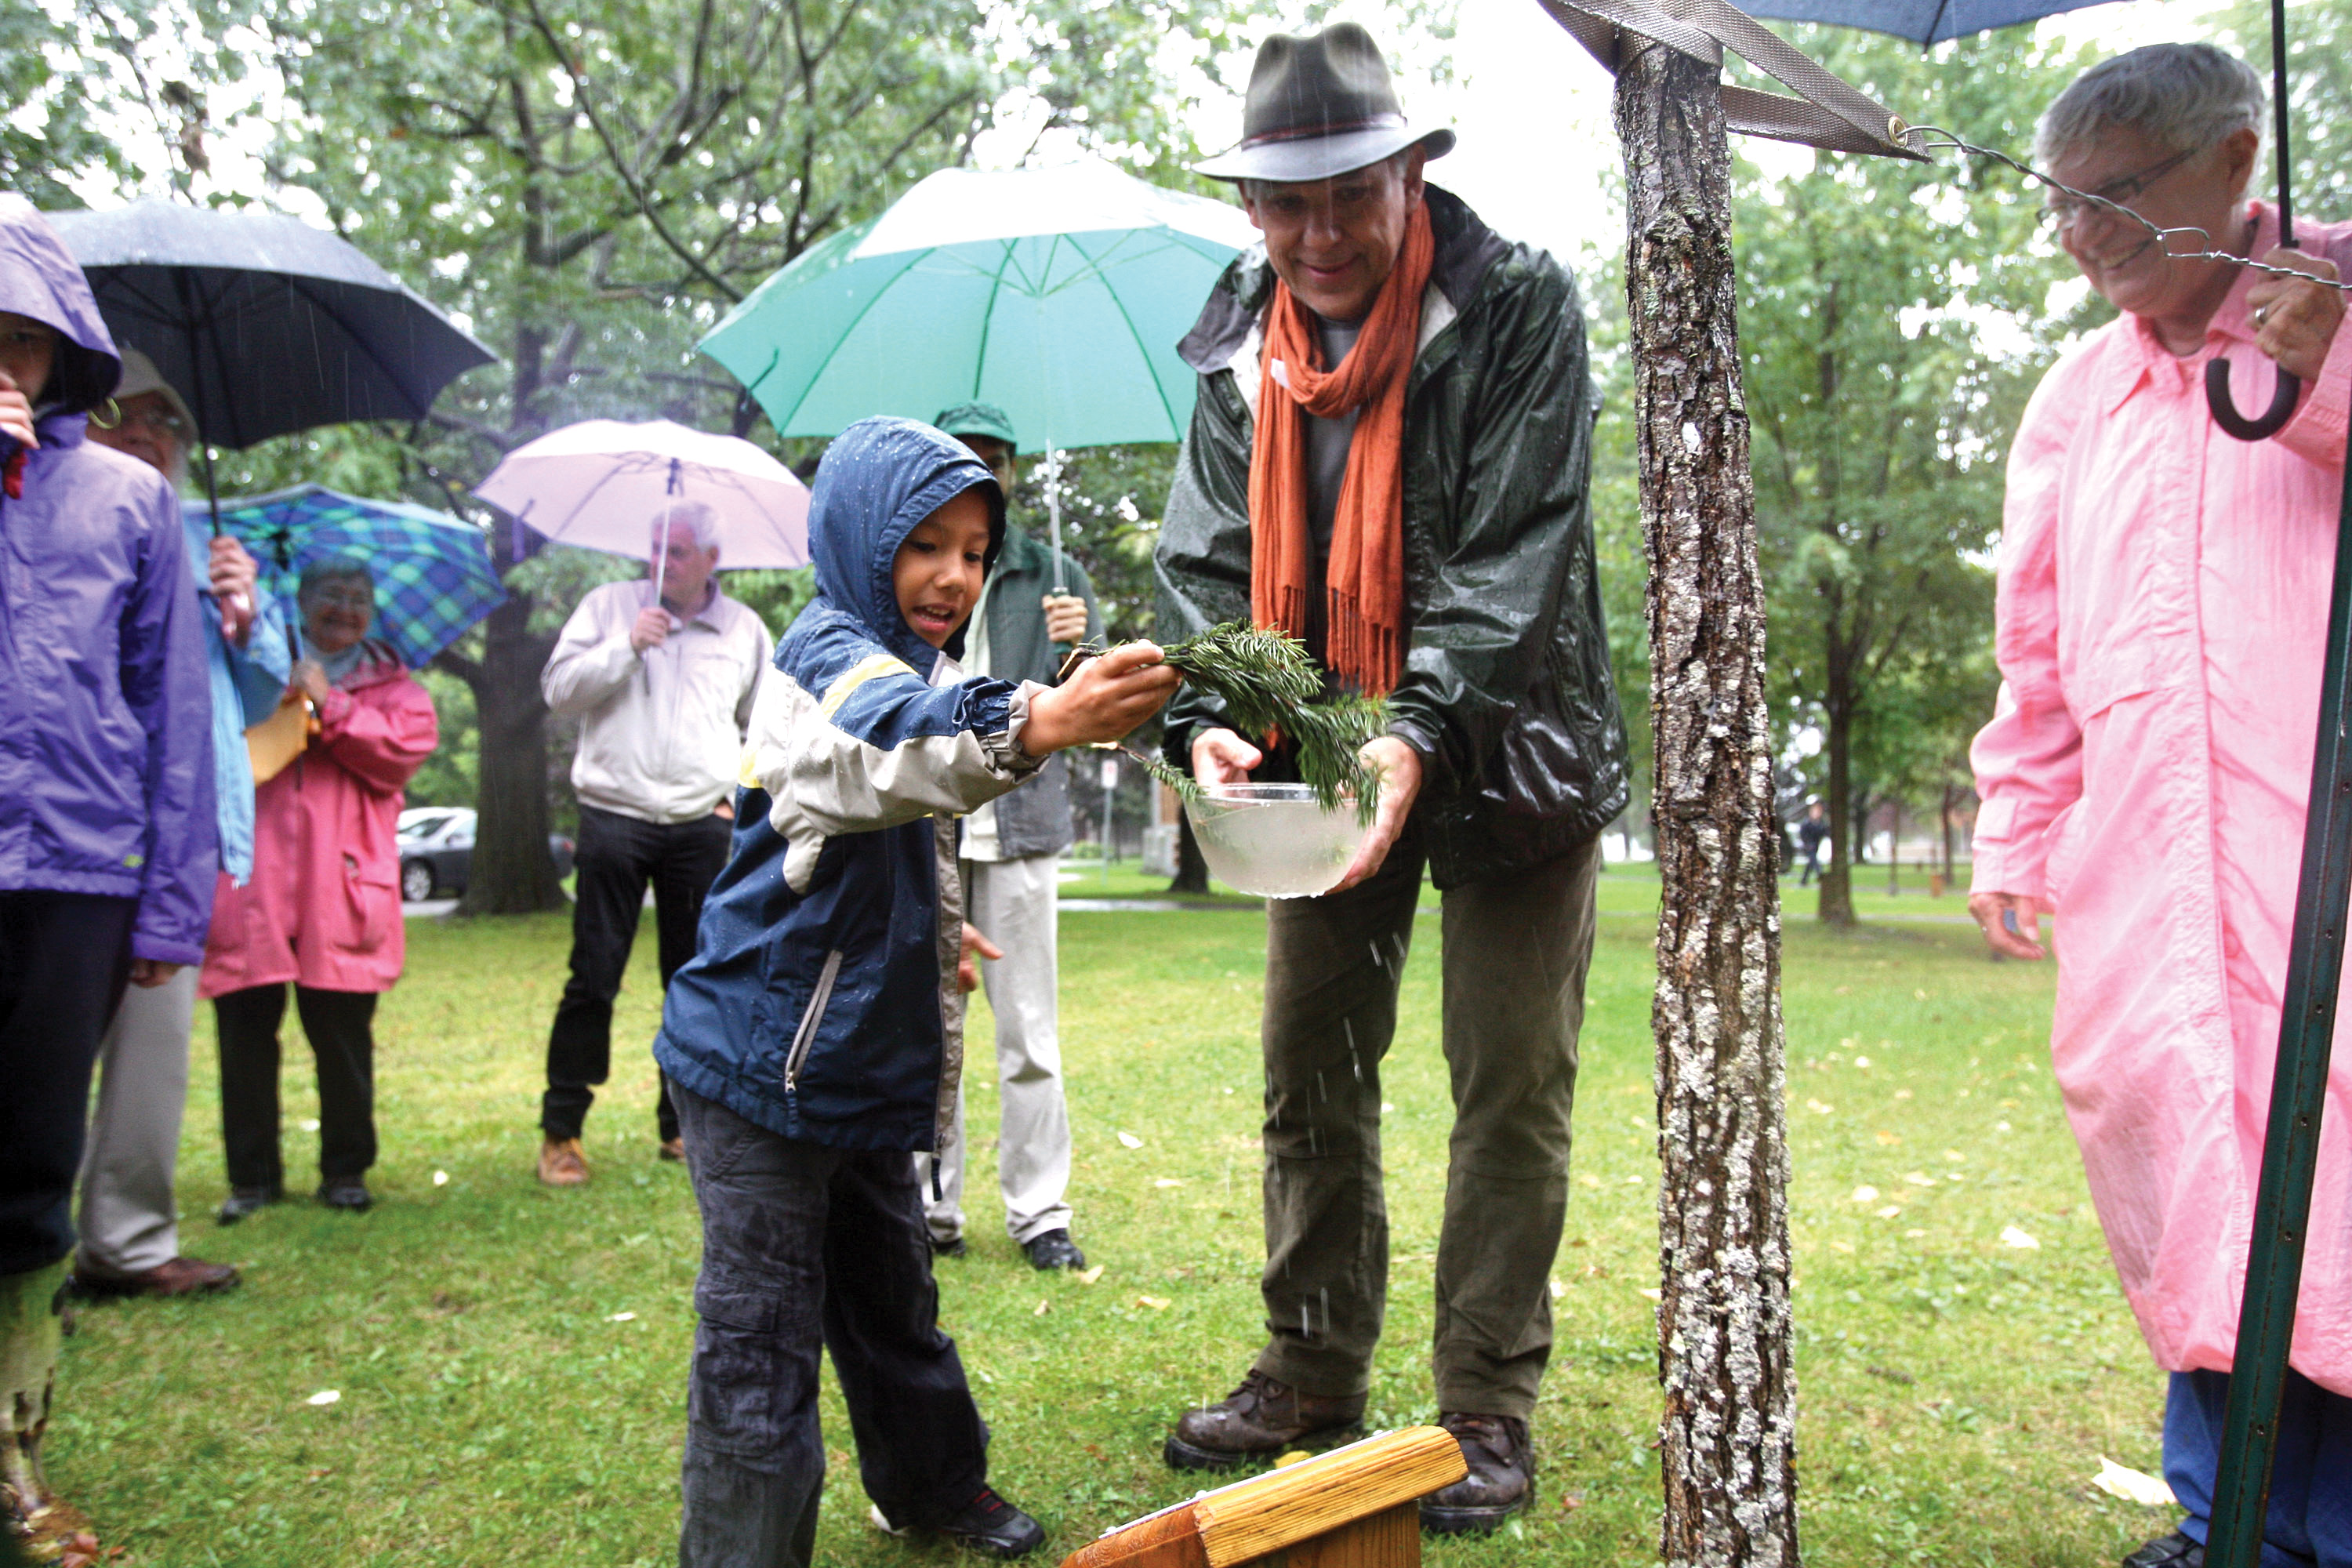 At the PeaceQuest launch last September, young Thomas McLaren, with some assistance from emcee Bill Penner, offers a few symbolic drops of water to a young oak tree planted beside the PeaceQuest marker. Despite the rain, more than 100 people gathered. Kingston, Ontario.